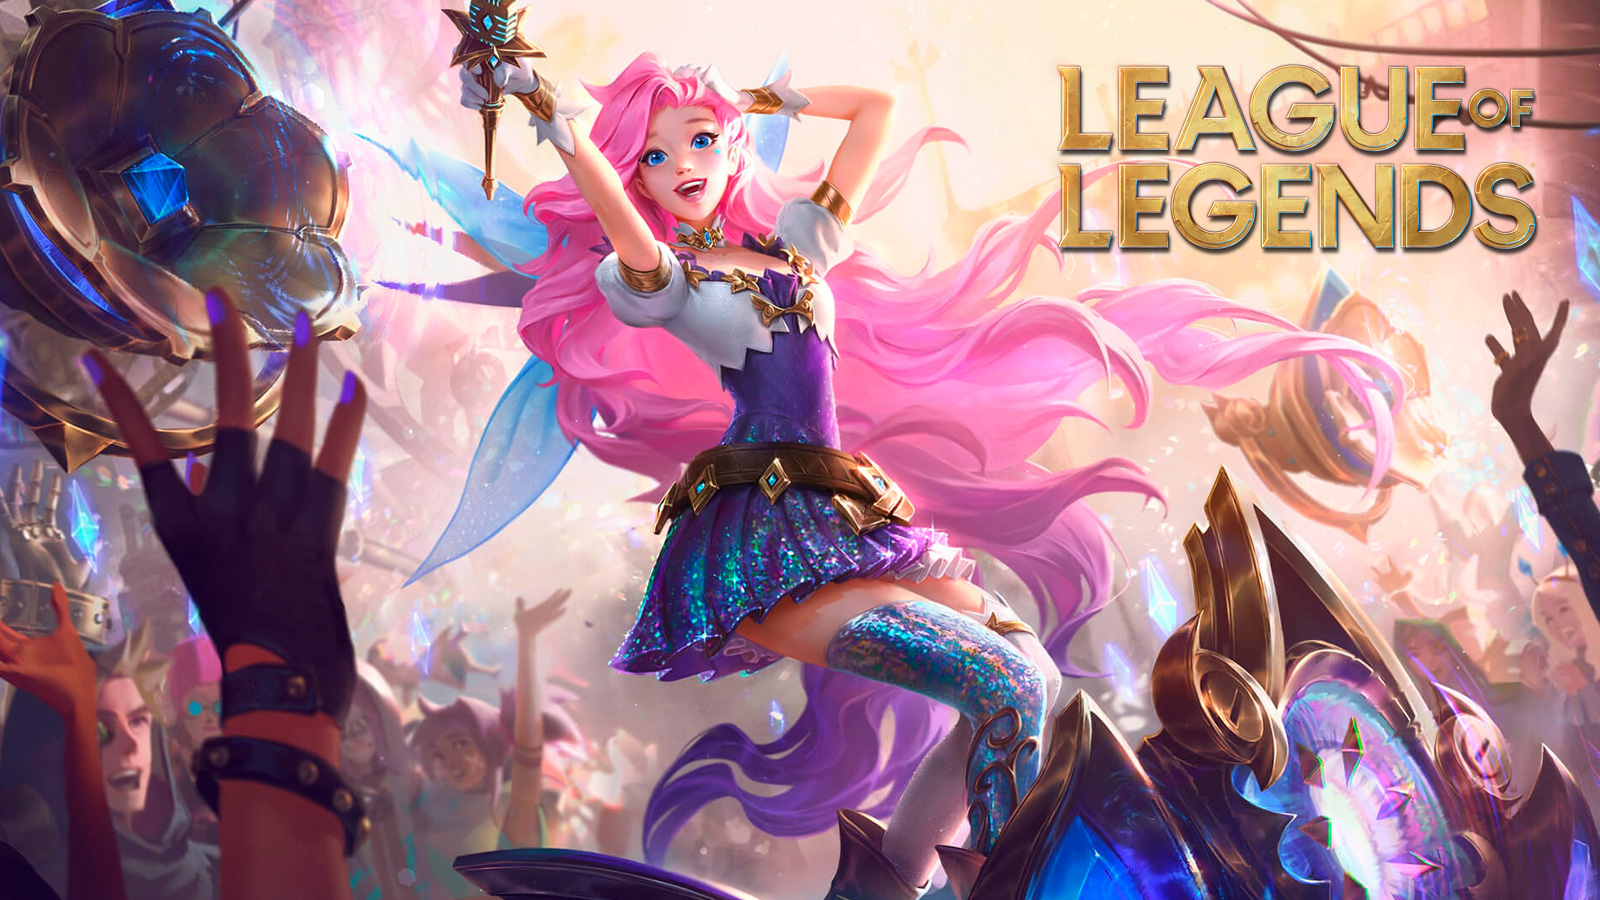 Seraphine League of Legends